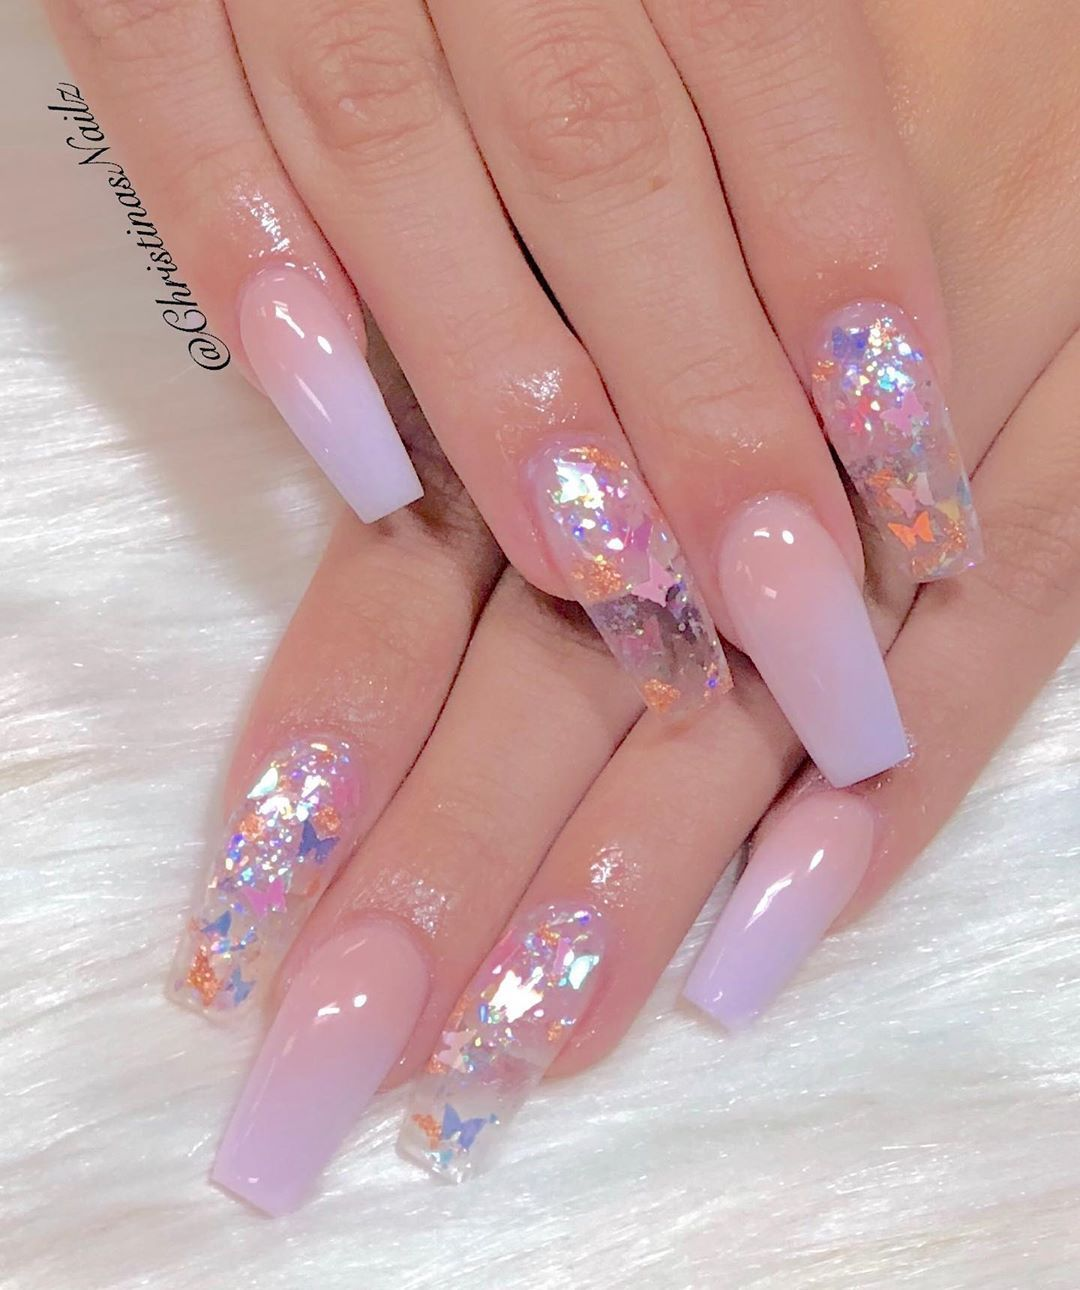 Christinas Nailz On Instagram Another Pretty Purple In 2020 Purple Acrylic Nails Summer Acrylic Nails Pretty Acrylic Nails